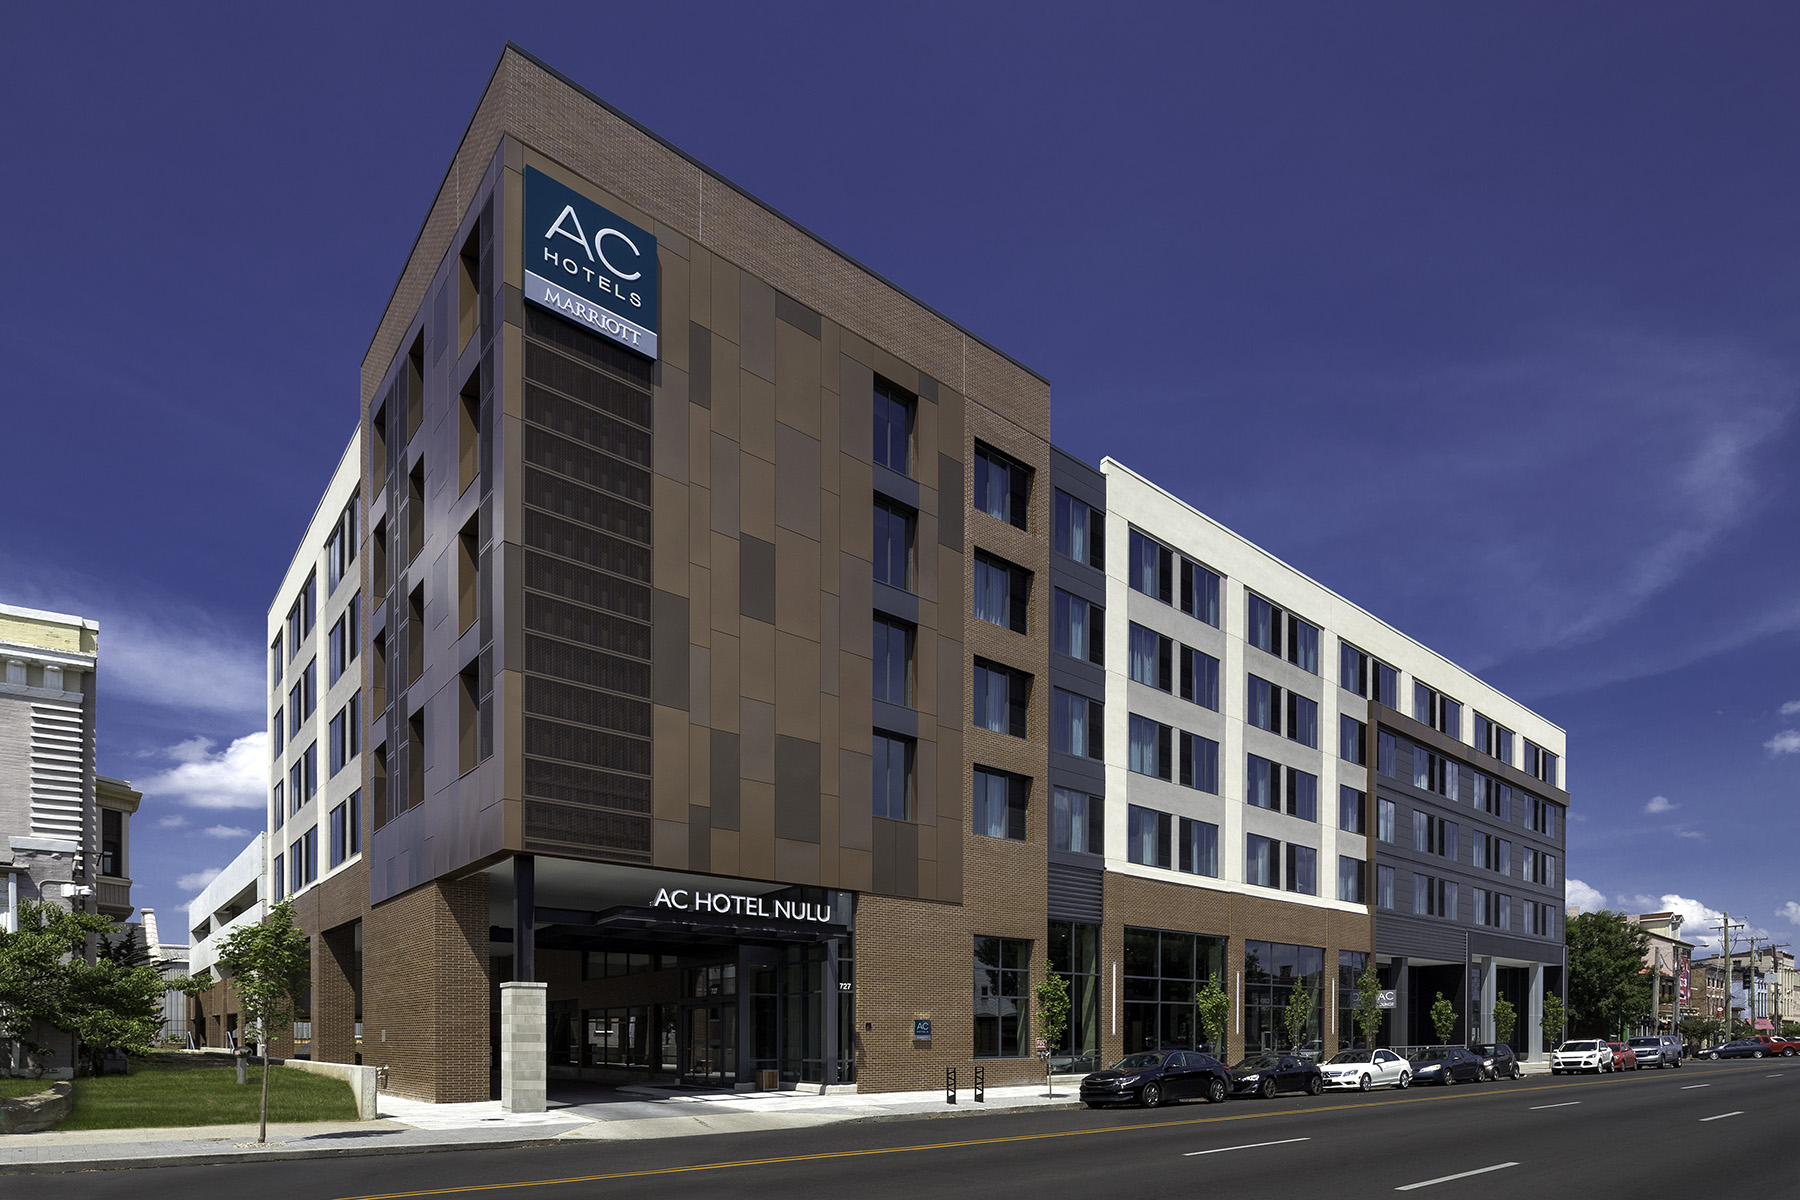 AC Hotel by Marriott exterior in Louisville